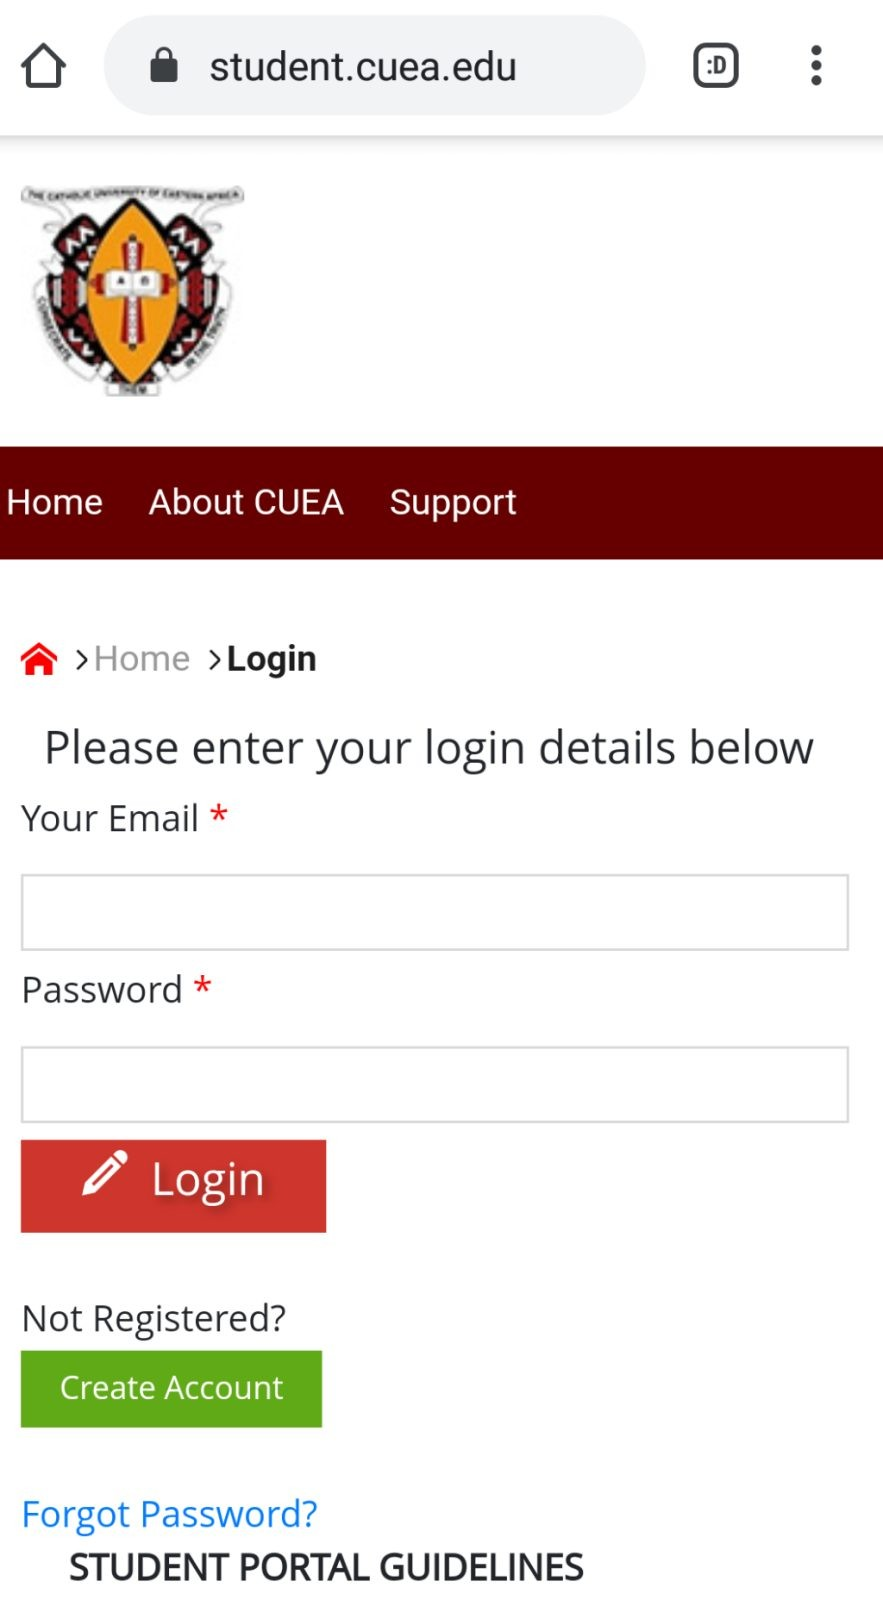 How to Log in to Catholic University Of Eastern Africa (CUEA) Students Portal, https://student.cuea.edu, for Registration, E-Learning, Hostel Booking, Fees, and Exam Results